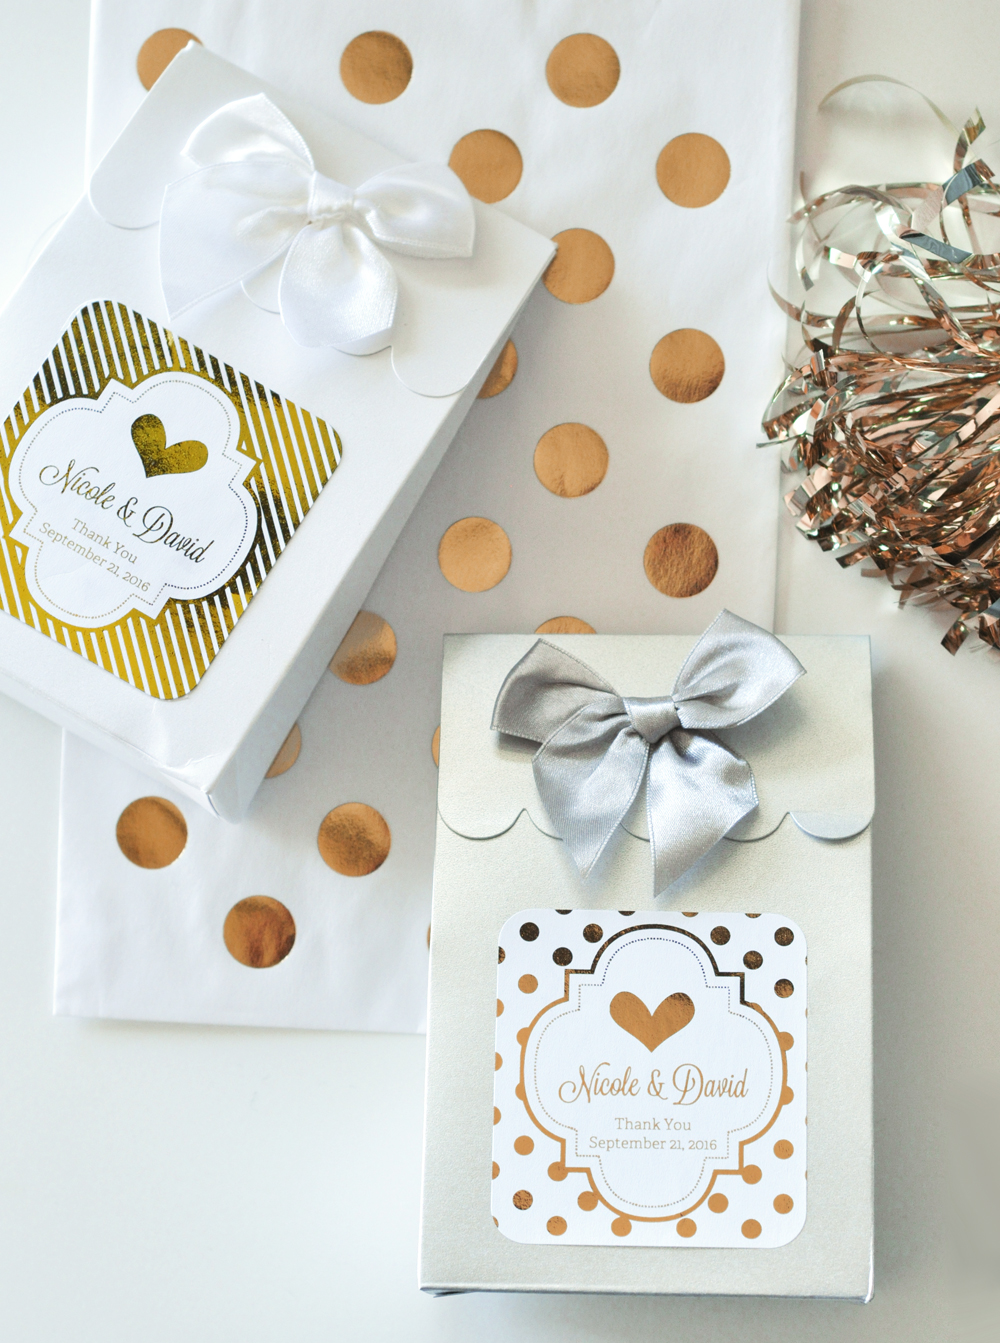 Wholesale Wedding Favors, Party Favors, by Event Blossom Sweet ...